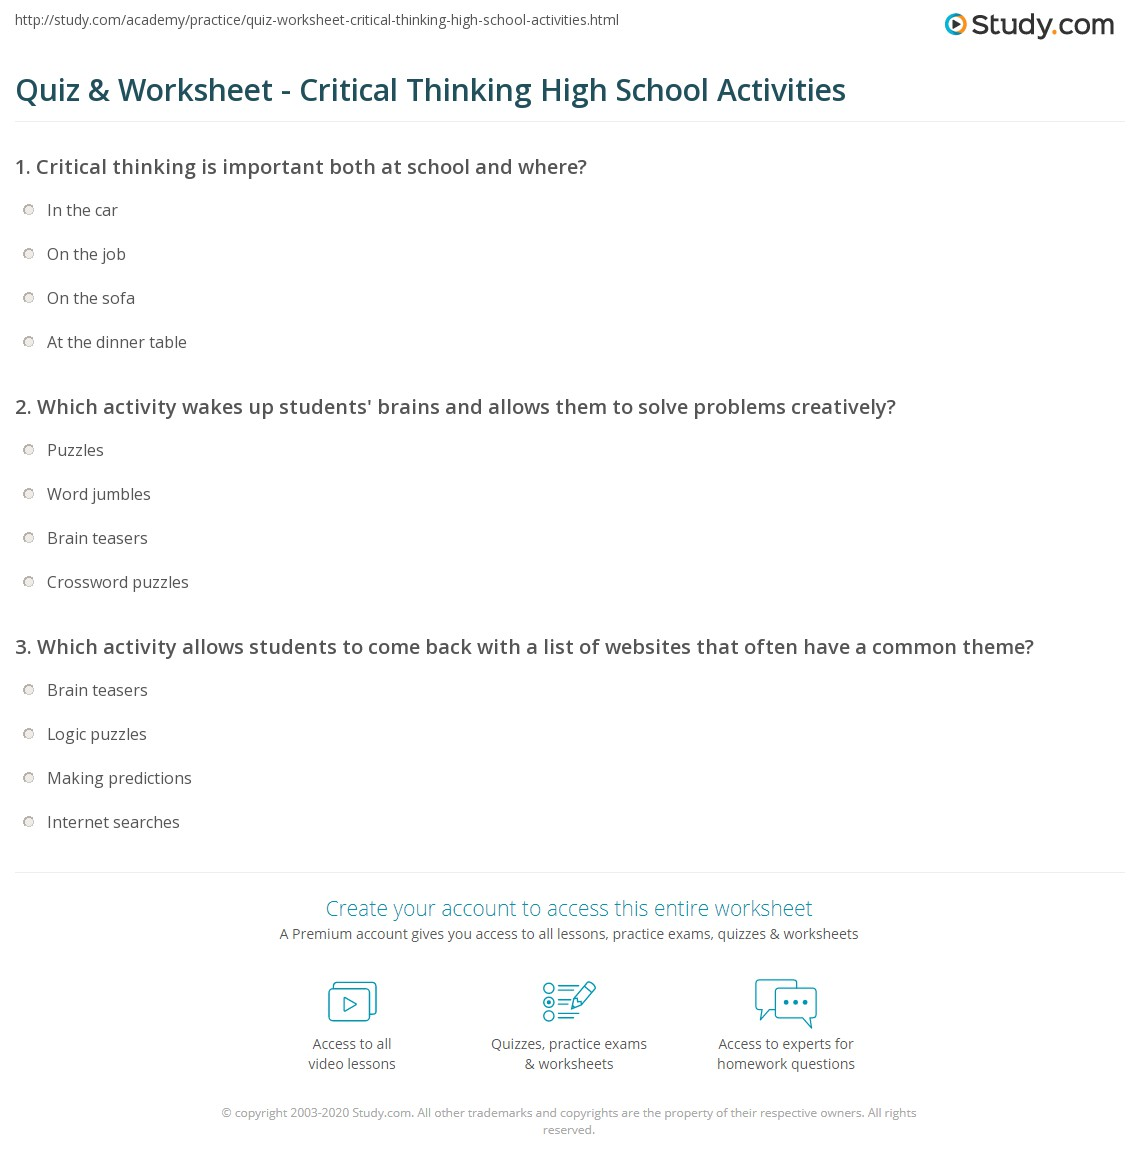 worksheet Critical Thinking Worksheet quiz worksheet critical thinking high school activities print for worksheet